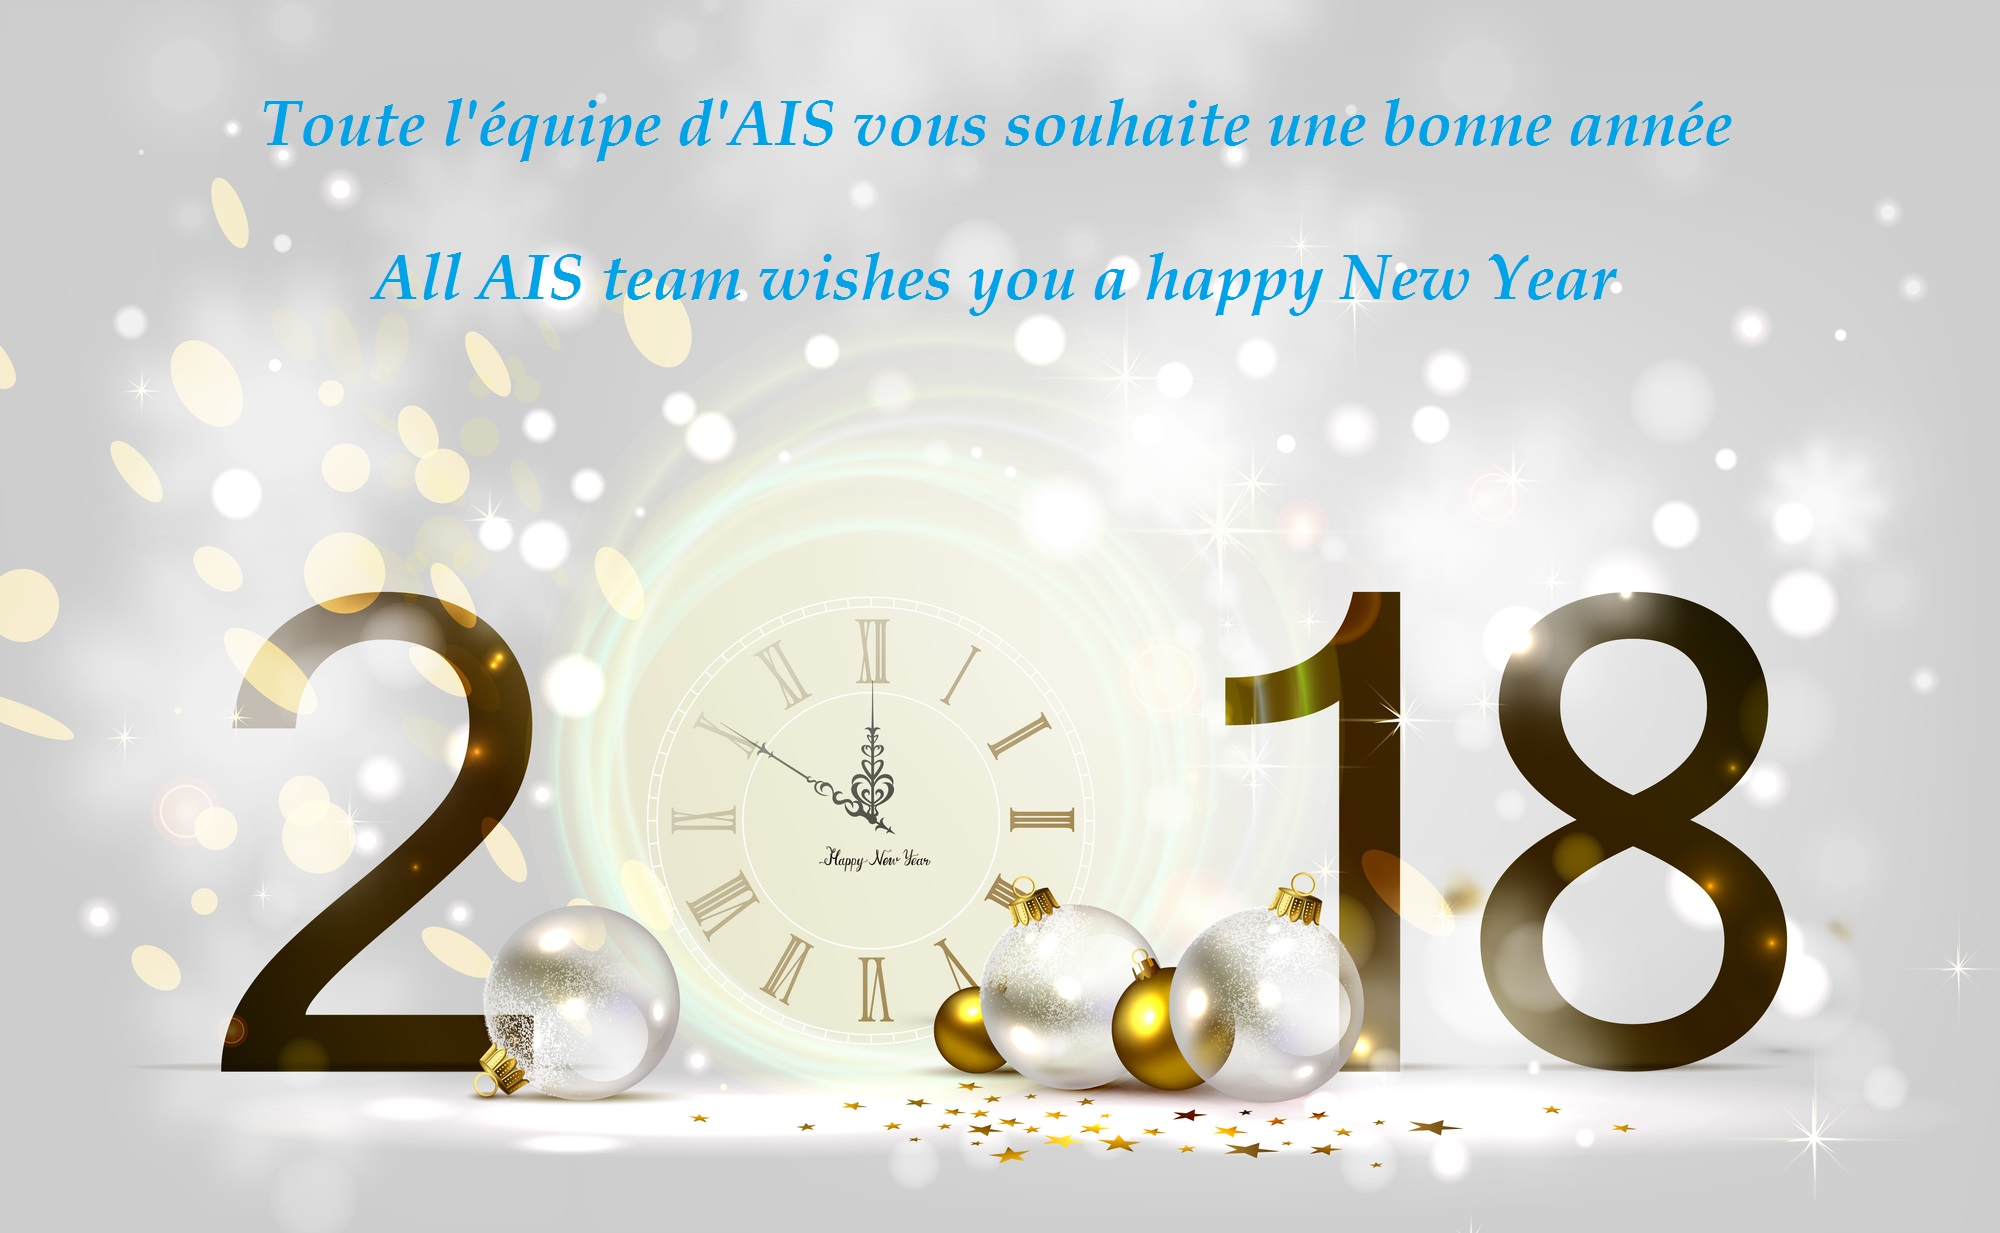 ais wishes a happy new year 2018 to all customers partners